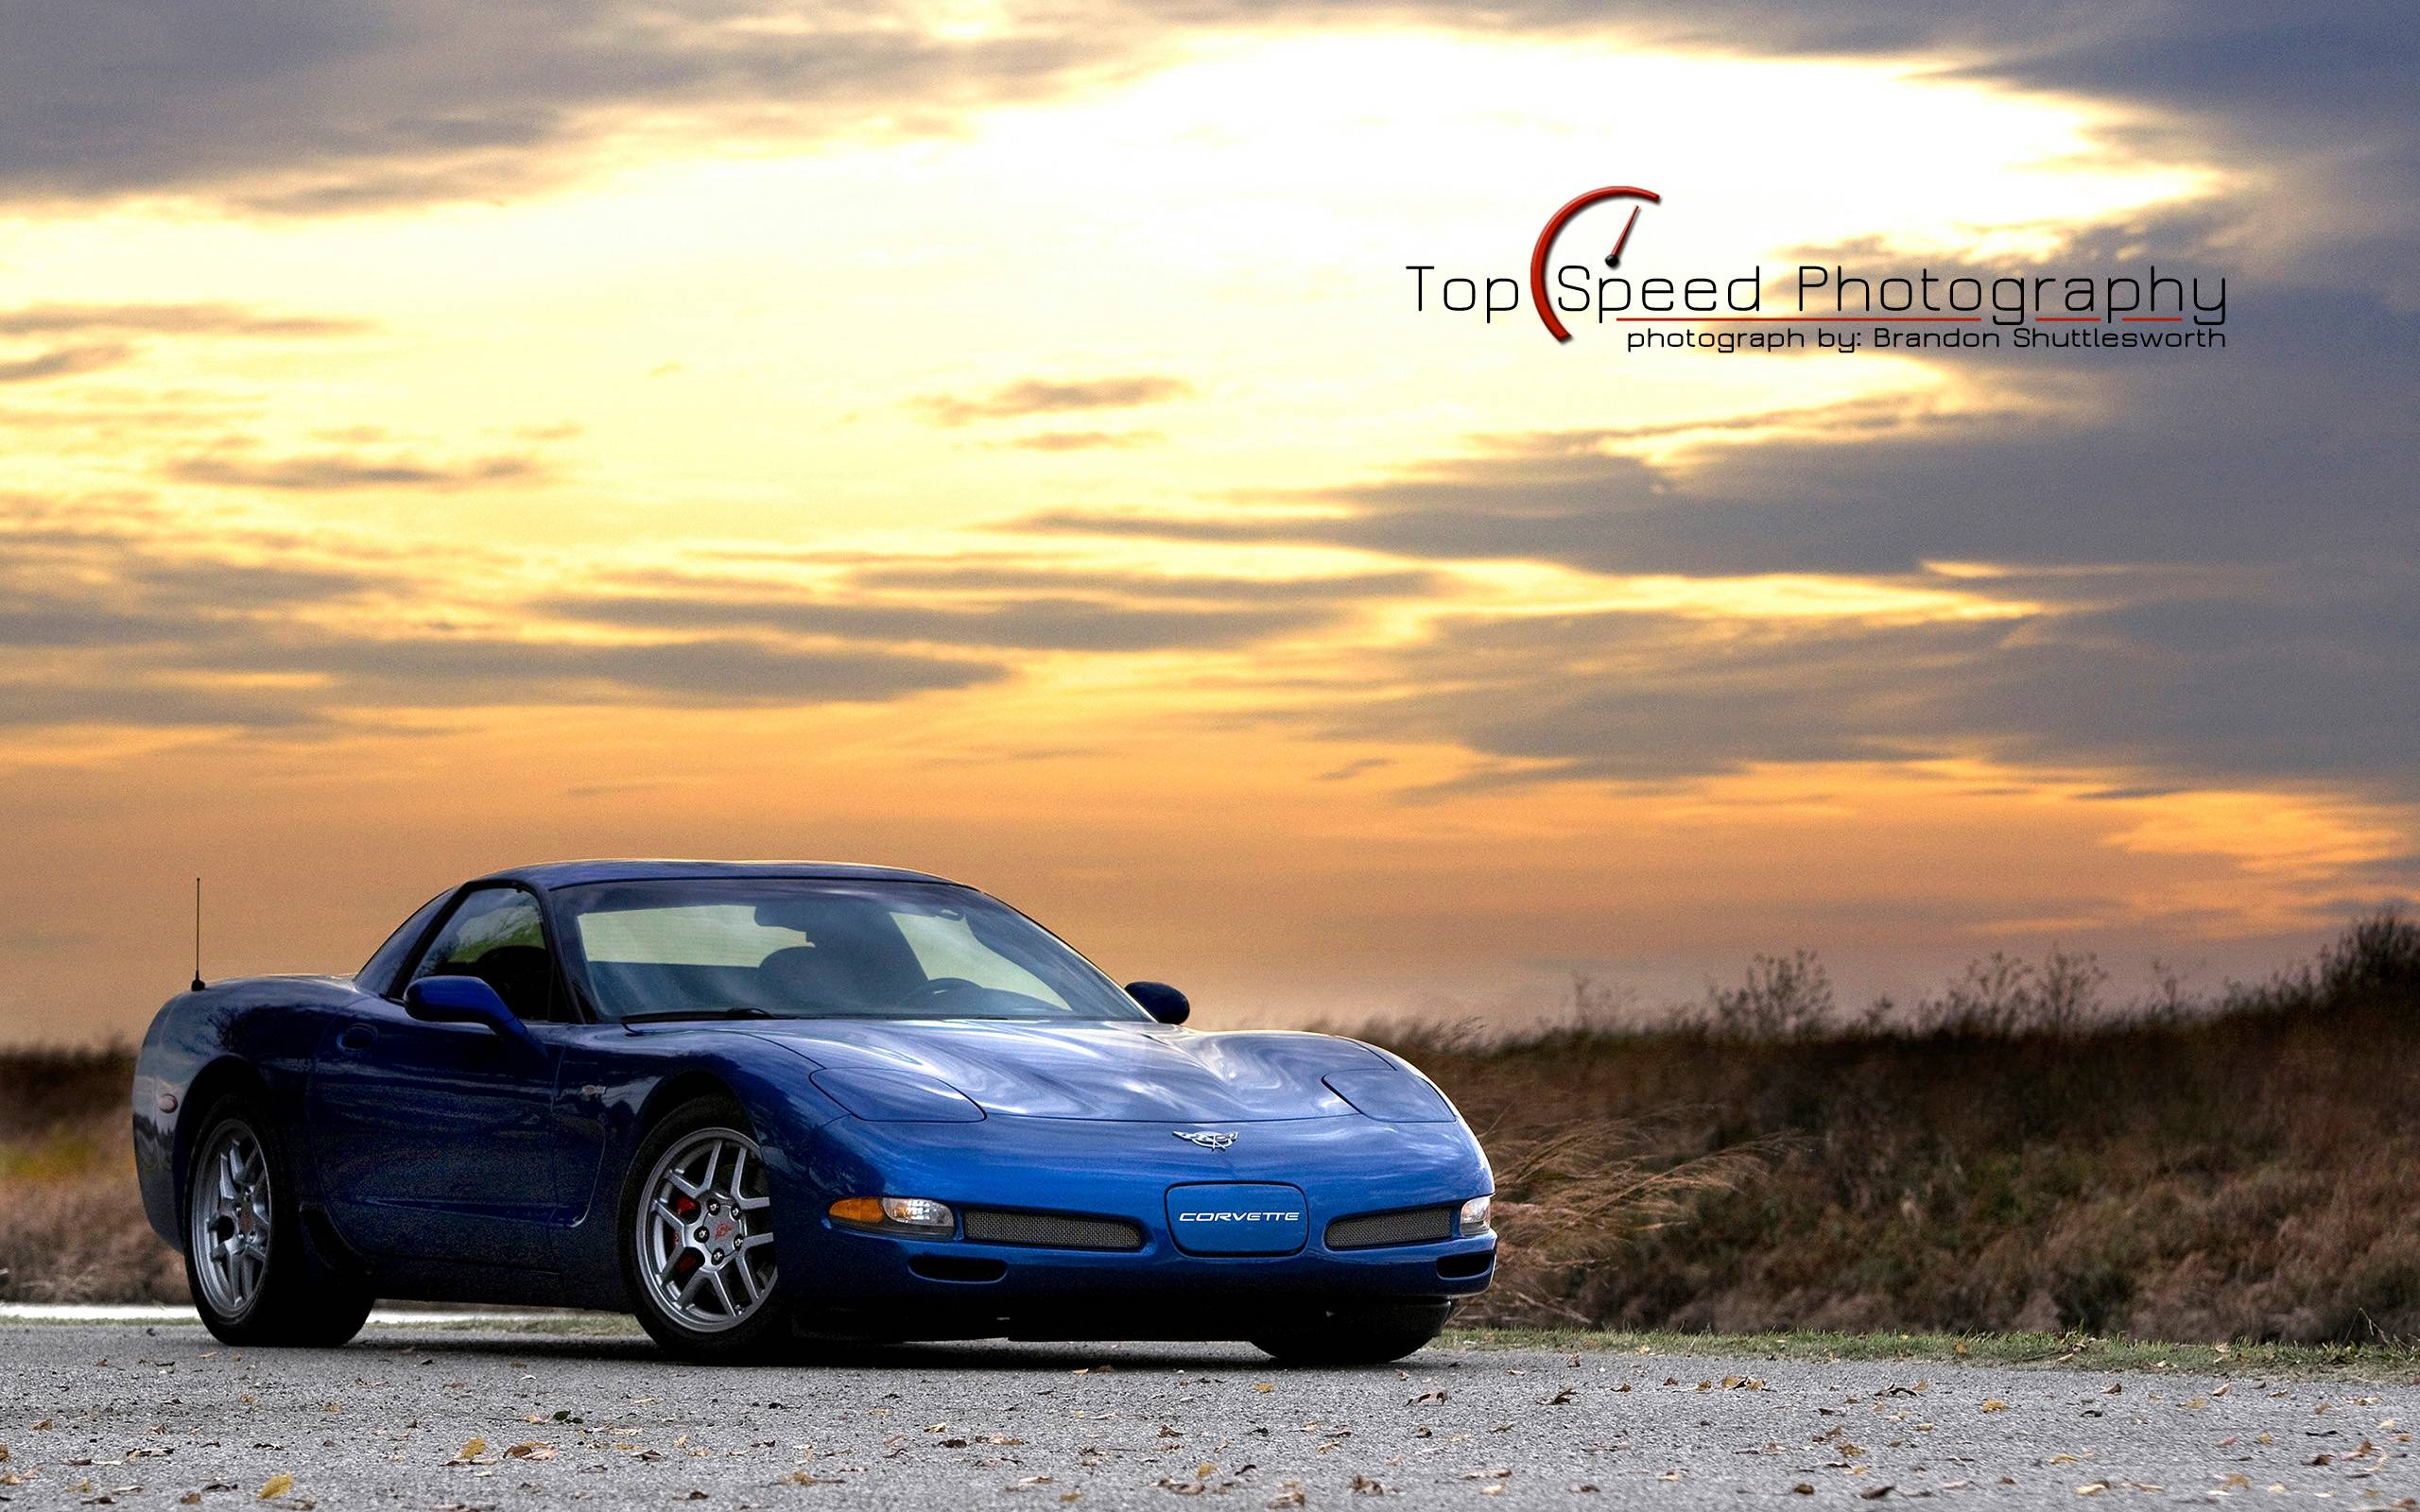 c5 corvette wallpapers wallpaper cave. Black Bedroom Furniture Sets. Home Design Ideas